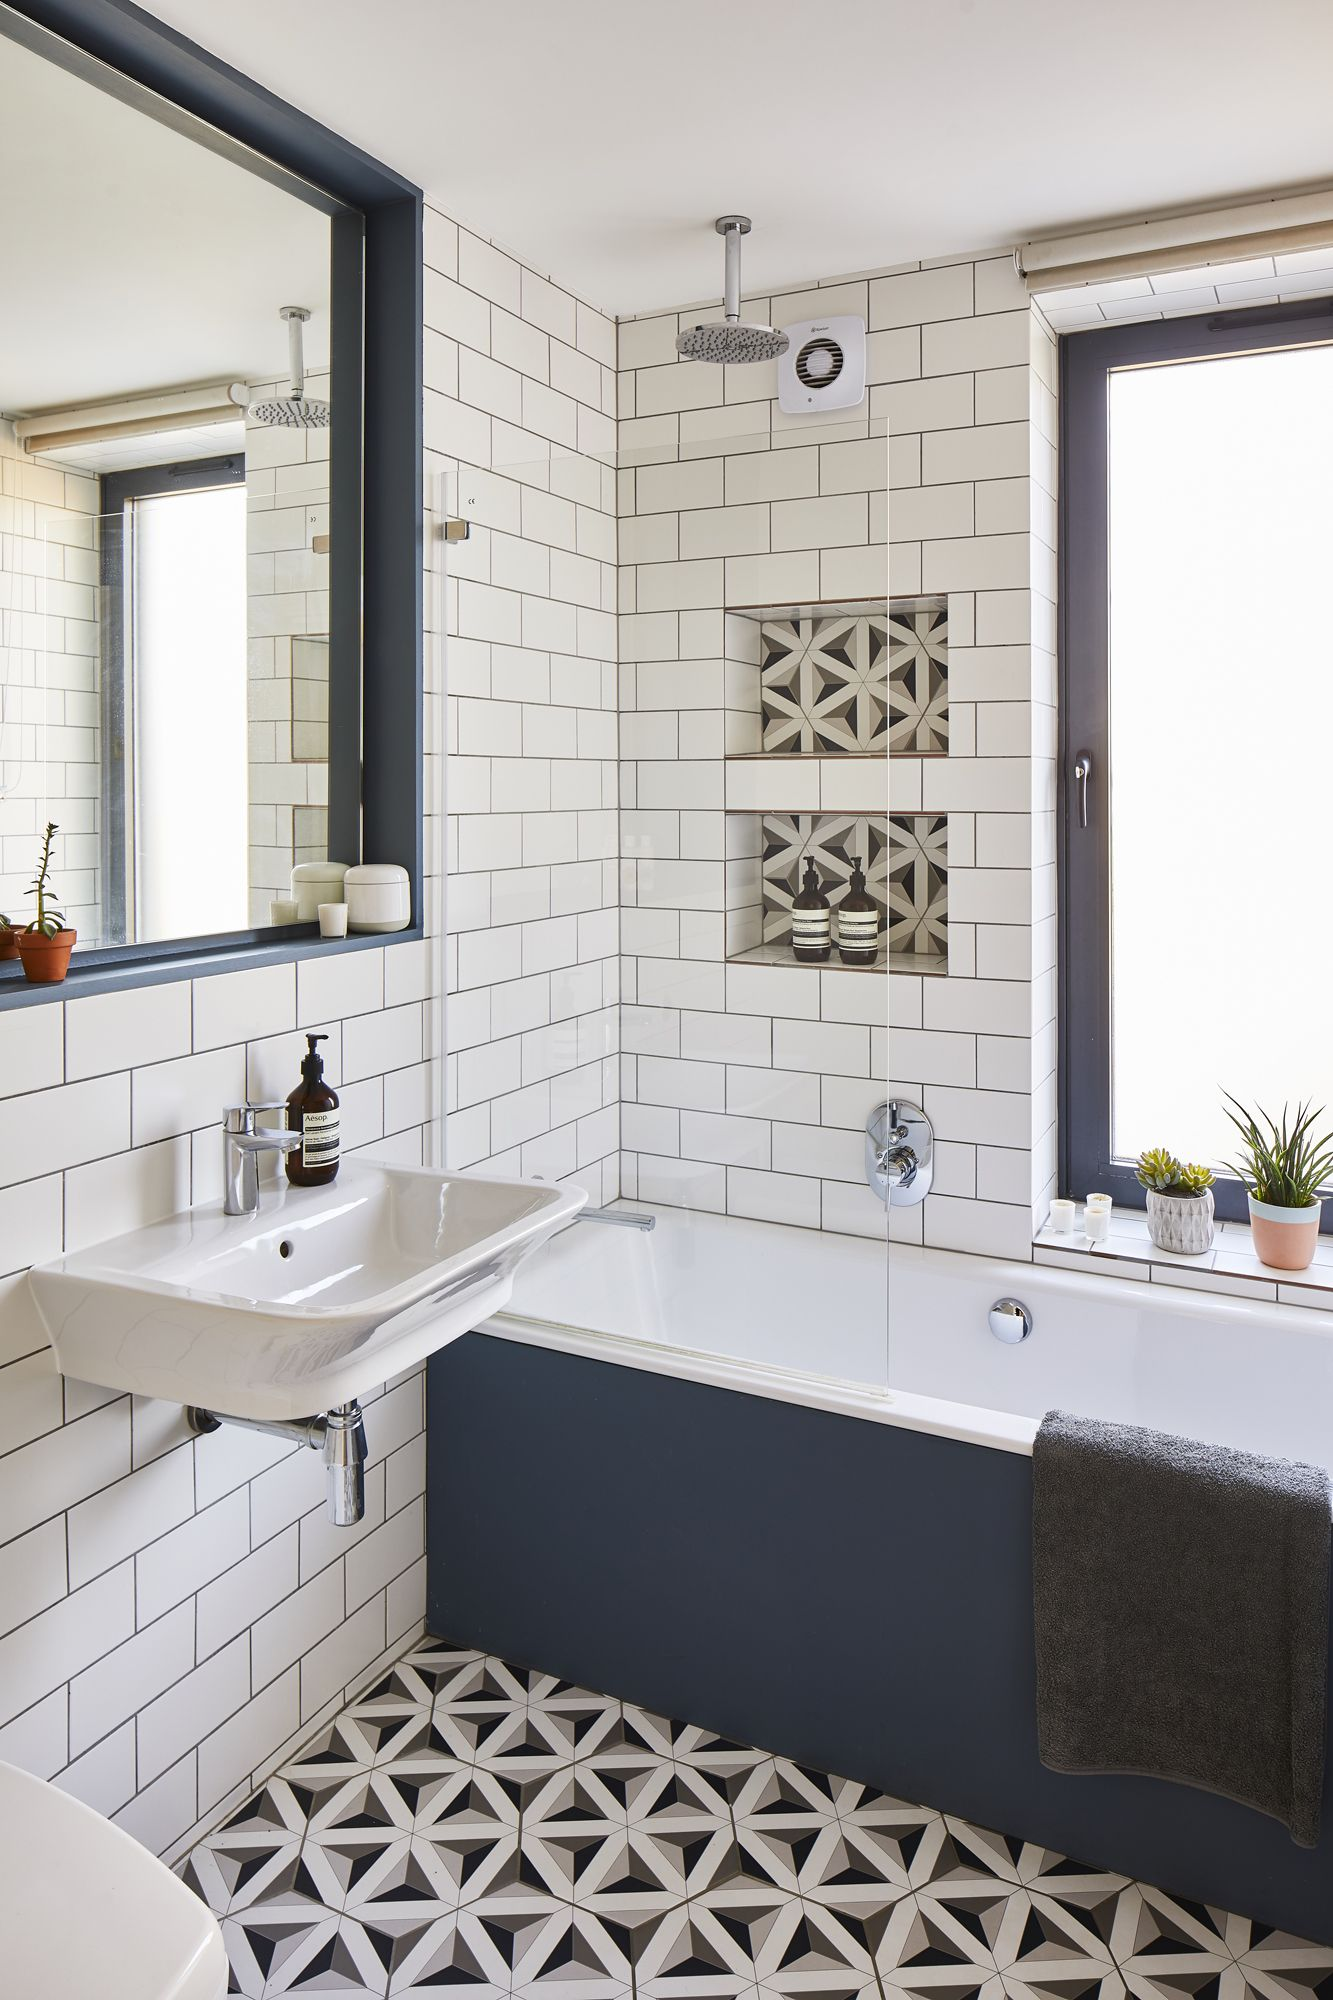 Cheap Bathroom Ideas 23 Budget Friendly Ways To Create A Stylish Space Bathroom Wall Panels Stylish Bathroom Cheap Bathrooms